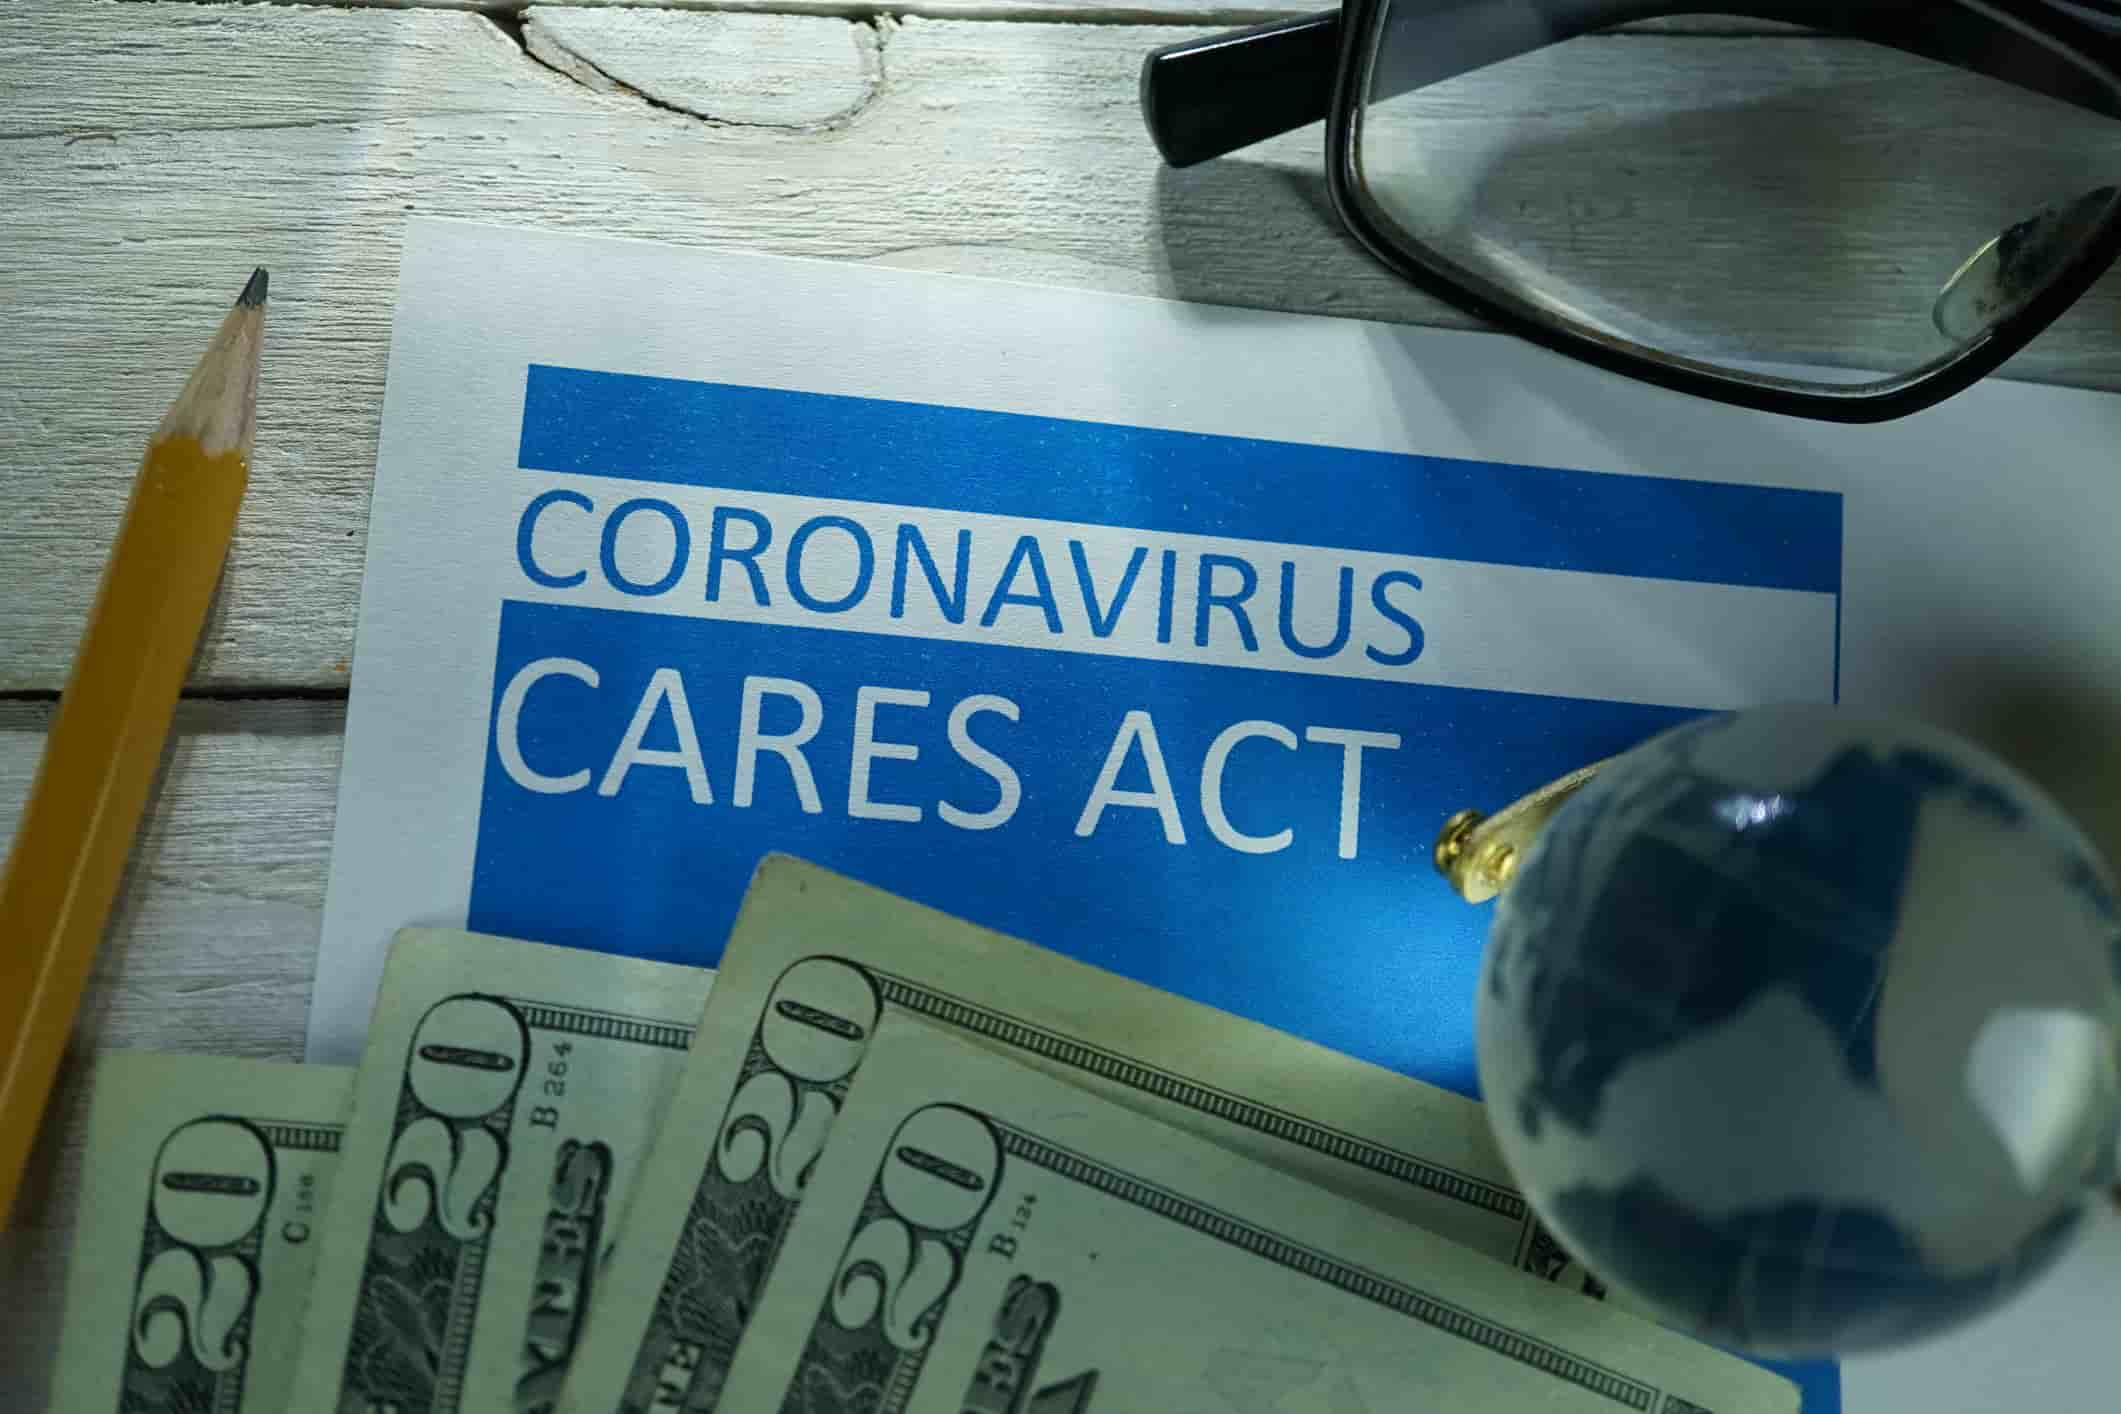 COVID-19: How the CARES Act Changed HSA, FSA, and HRA Requirements